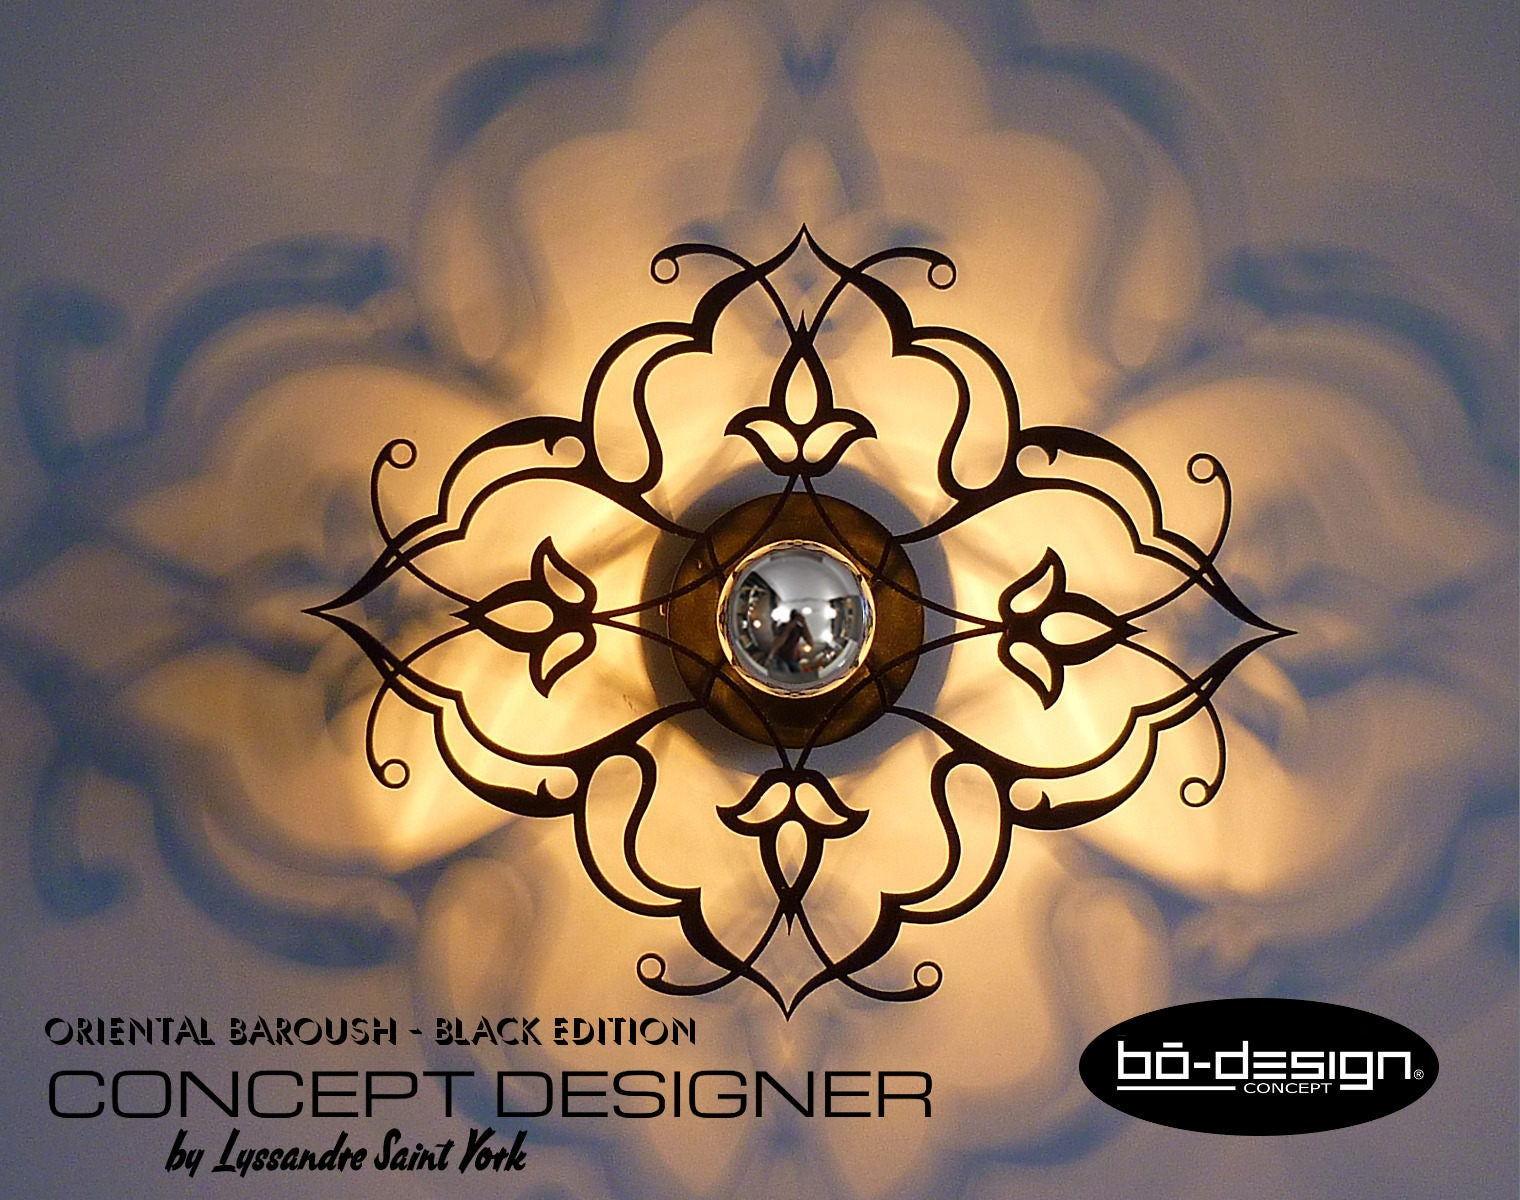 applique luminaire murale orientale design baroush modele. Black Bedroom Furniture Sets. Home Design Ideas